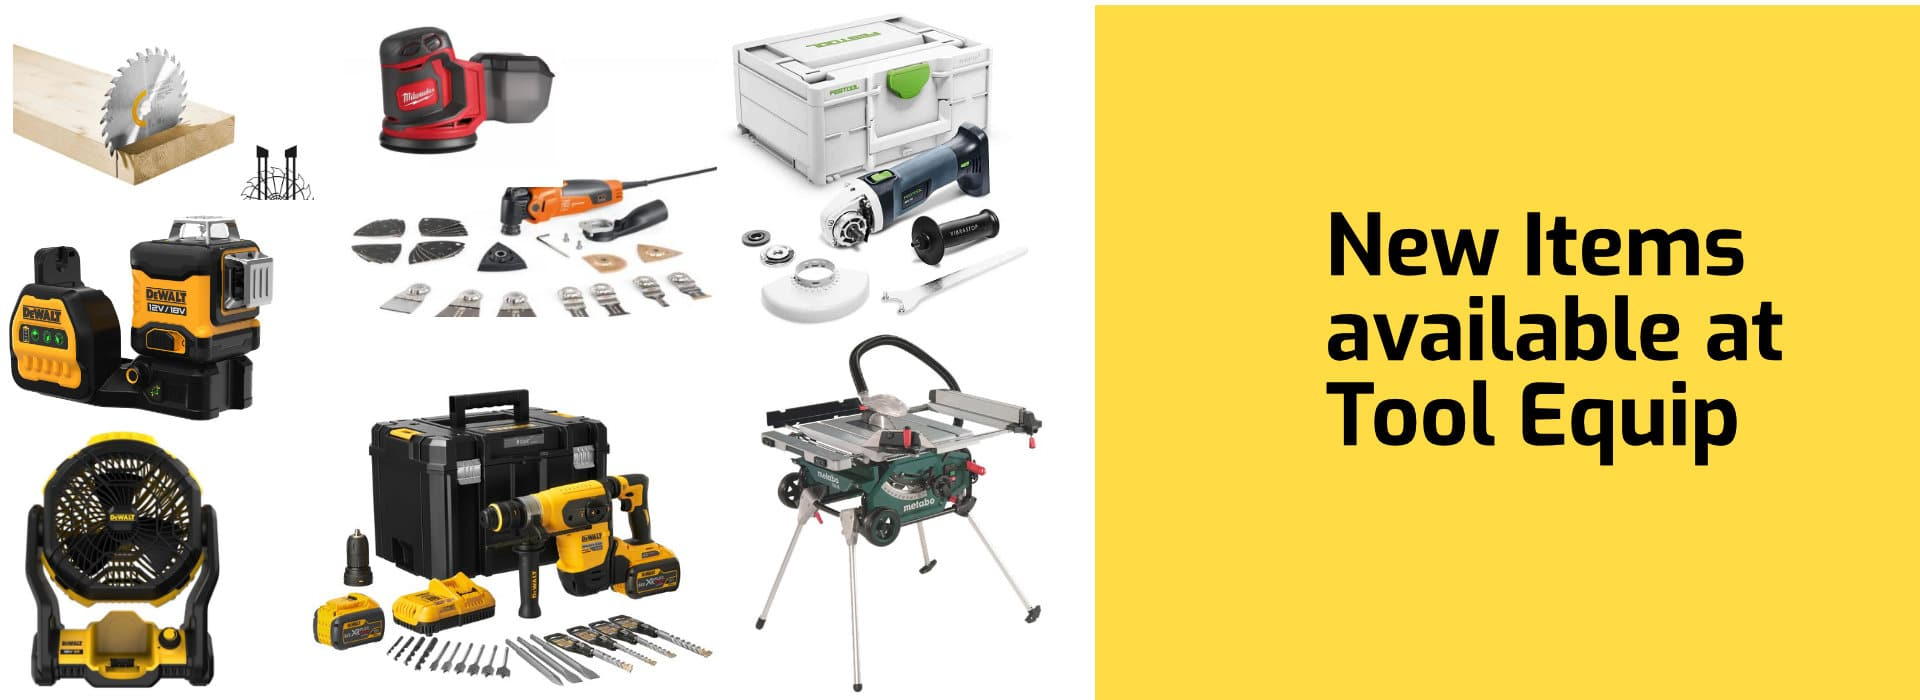 New tools available at tool Equip